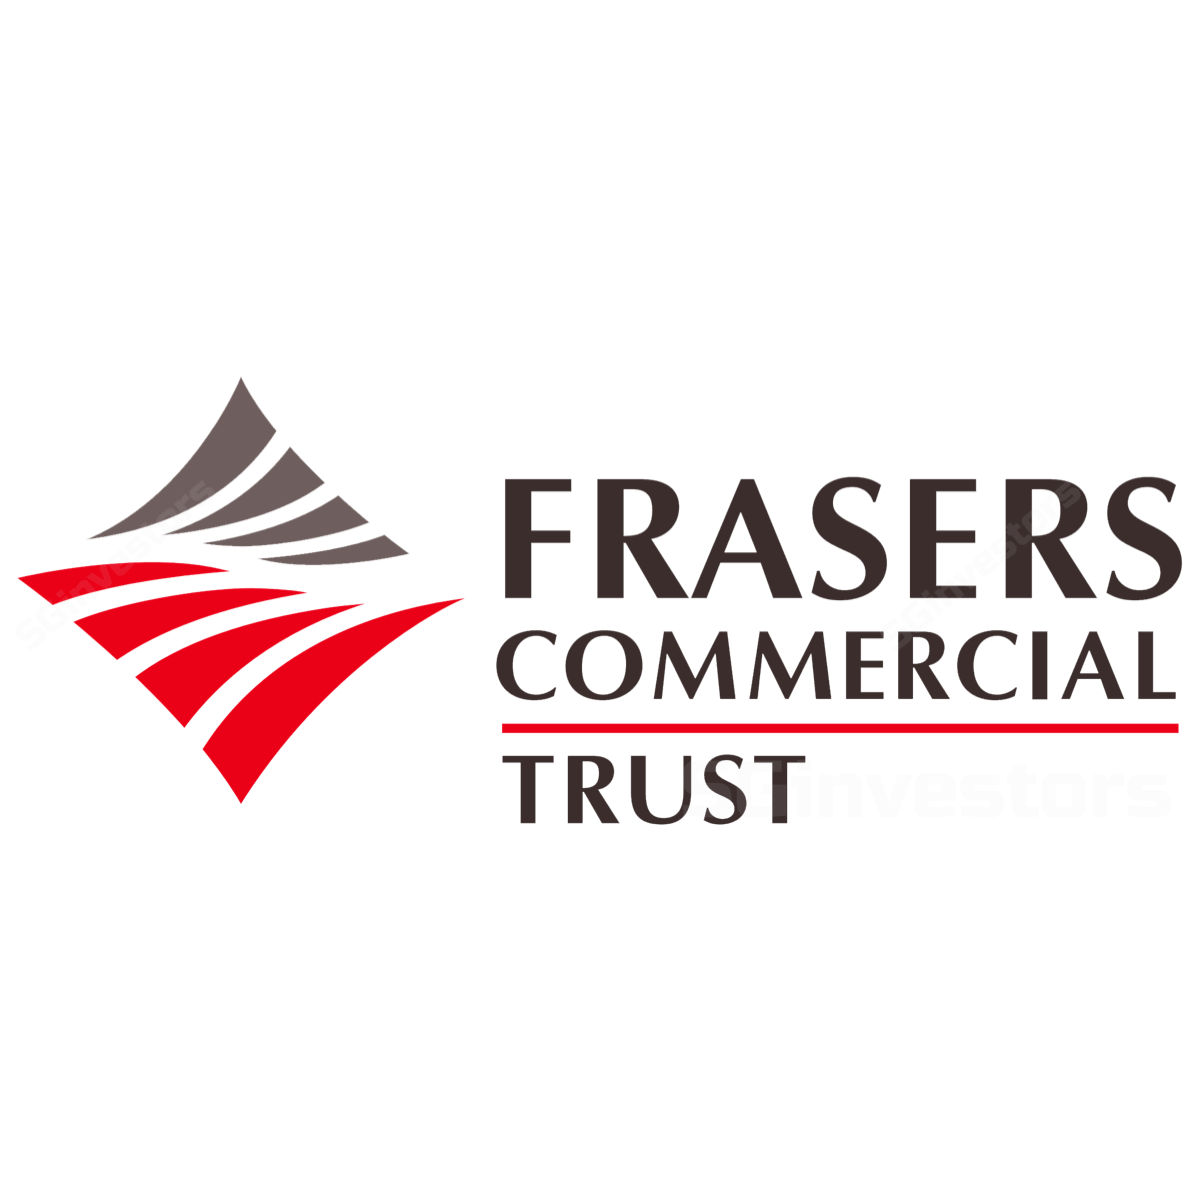 Frasers Commercial Trust - OCBC Investment 2017-01-24: Flat performance in-line with expectations